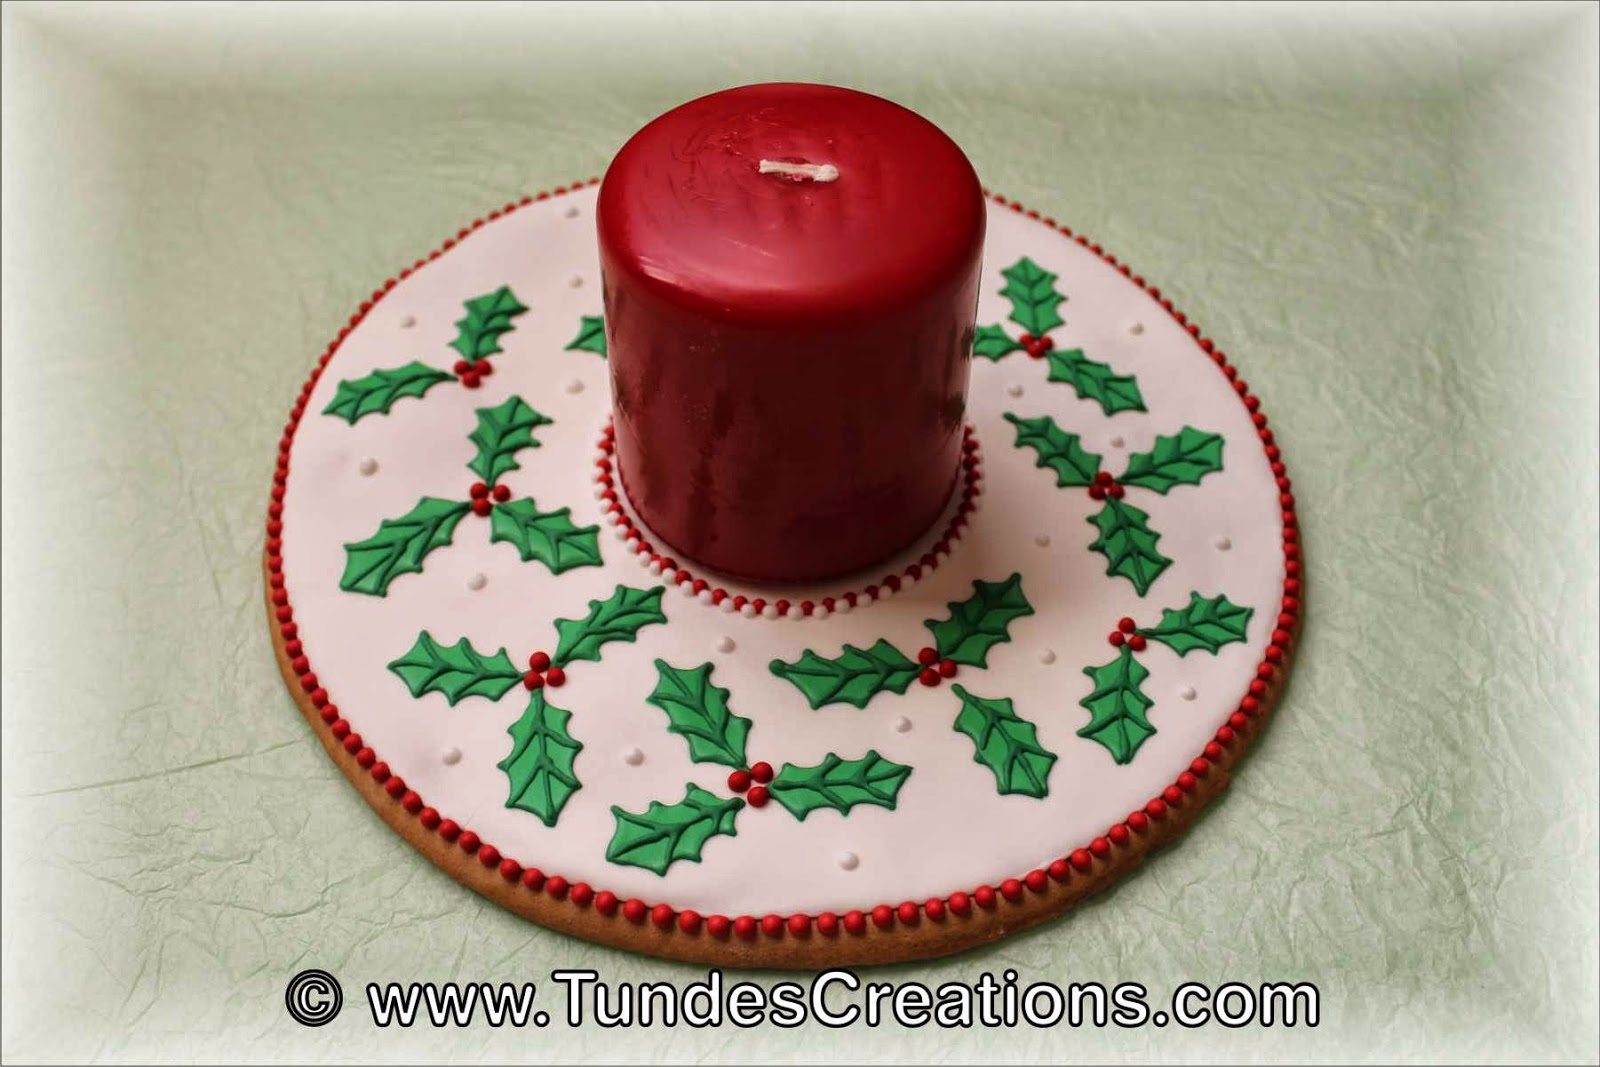 Gingerbread Christmas Centerpiece with Holy pattern